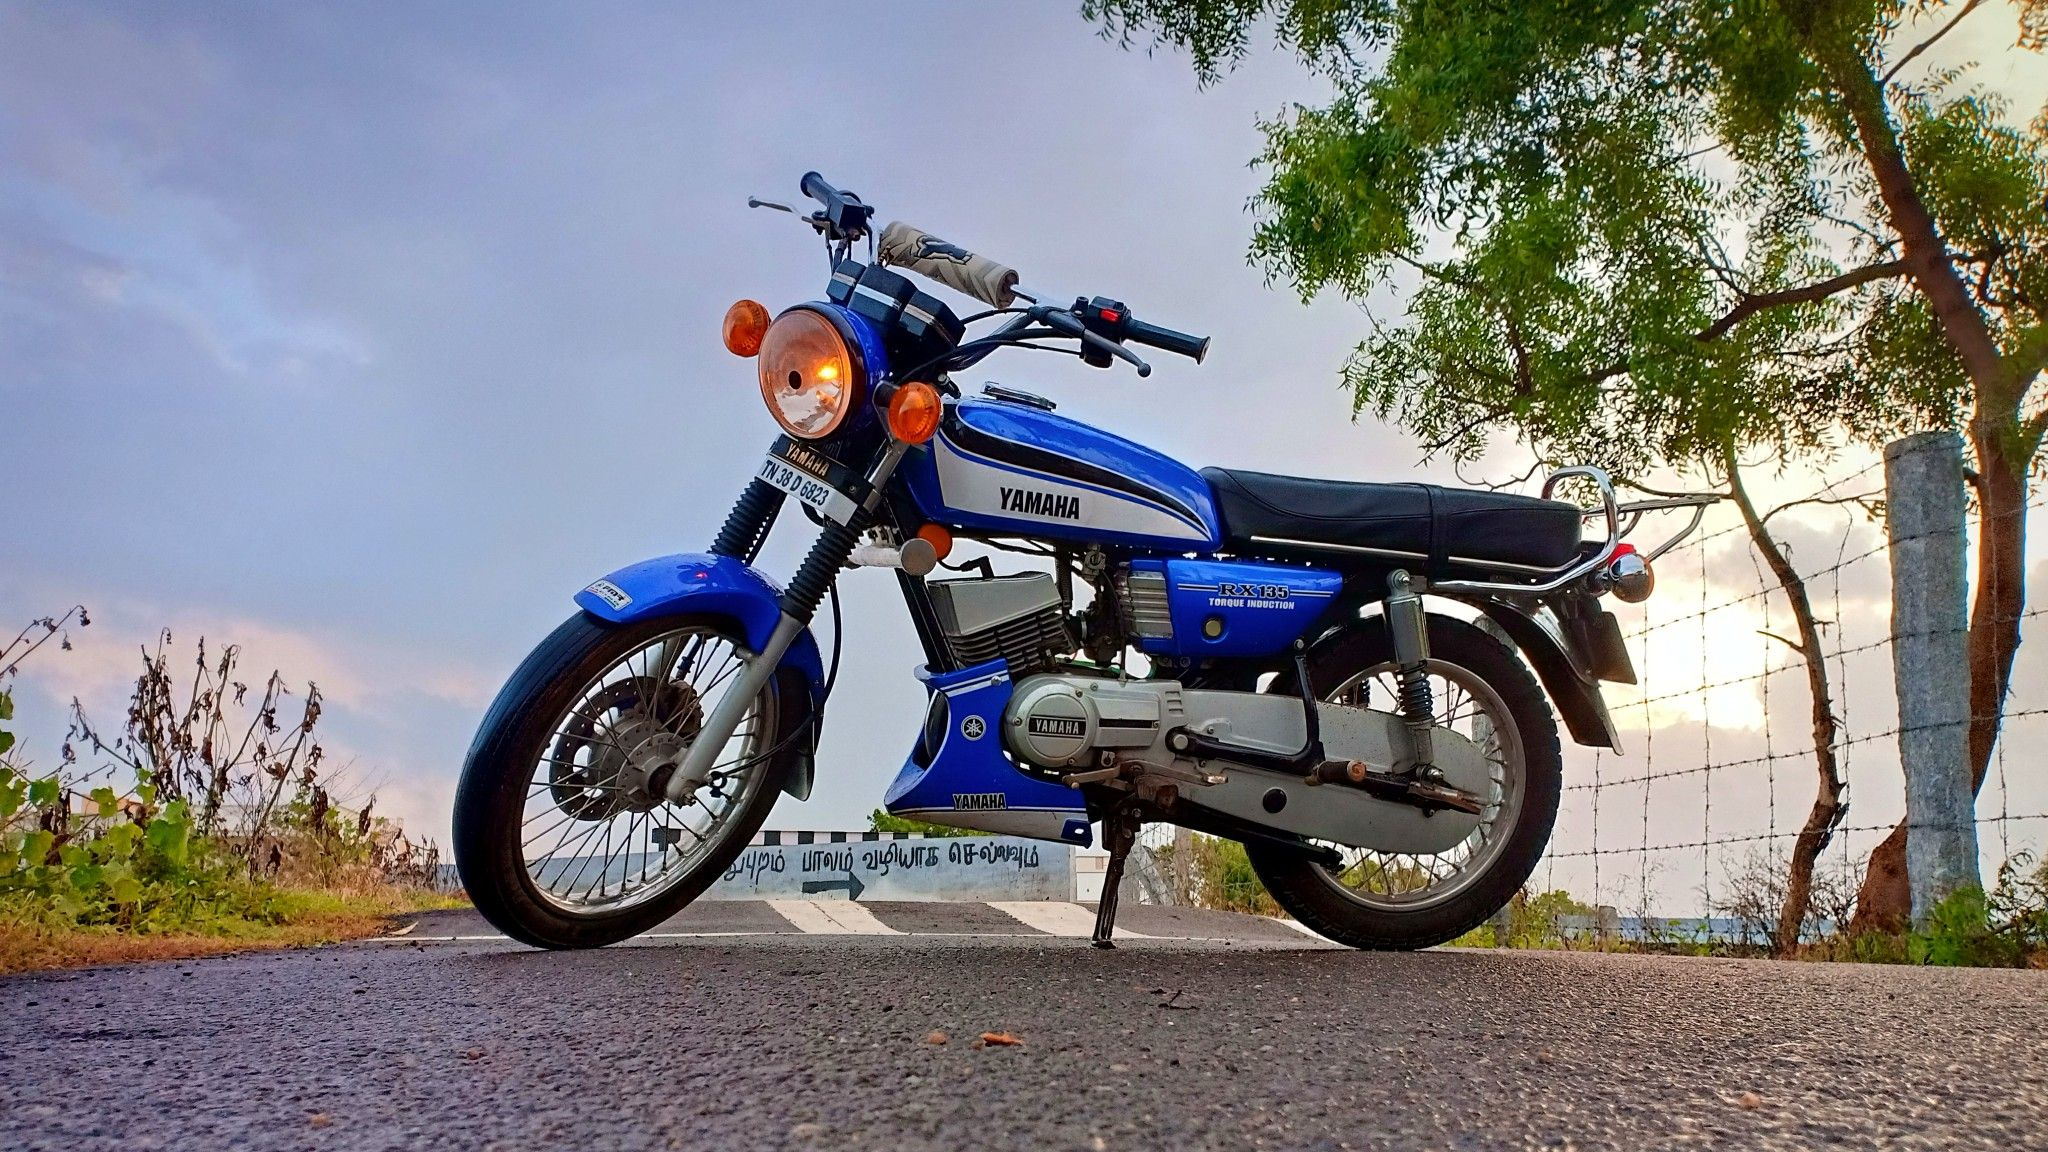 Yamaha Rx135 4speed Customized Fmr Pollachi Tamilnadu Yamaha Rx100